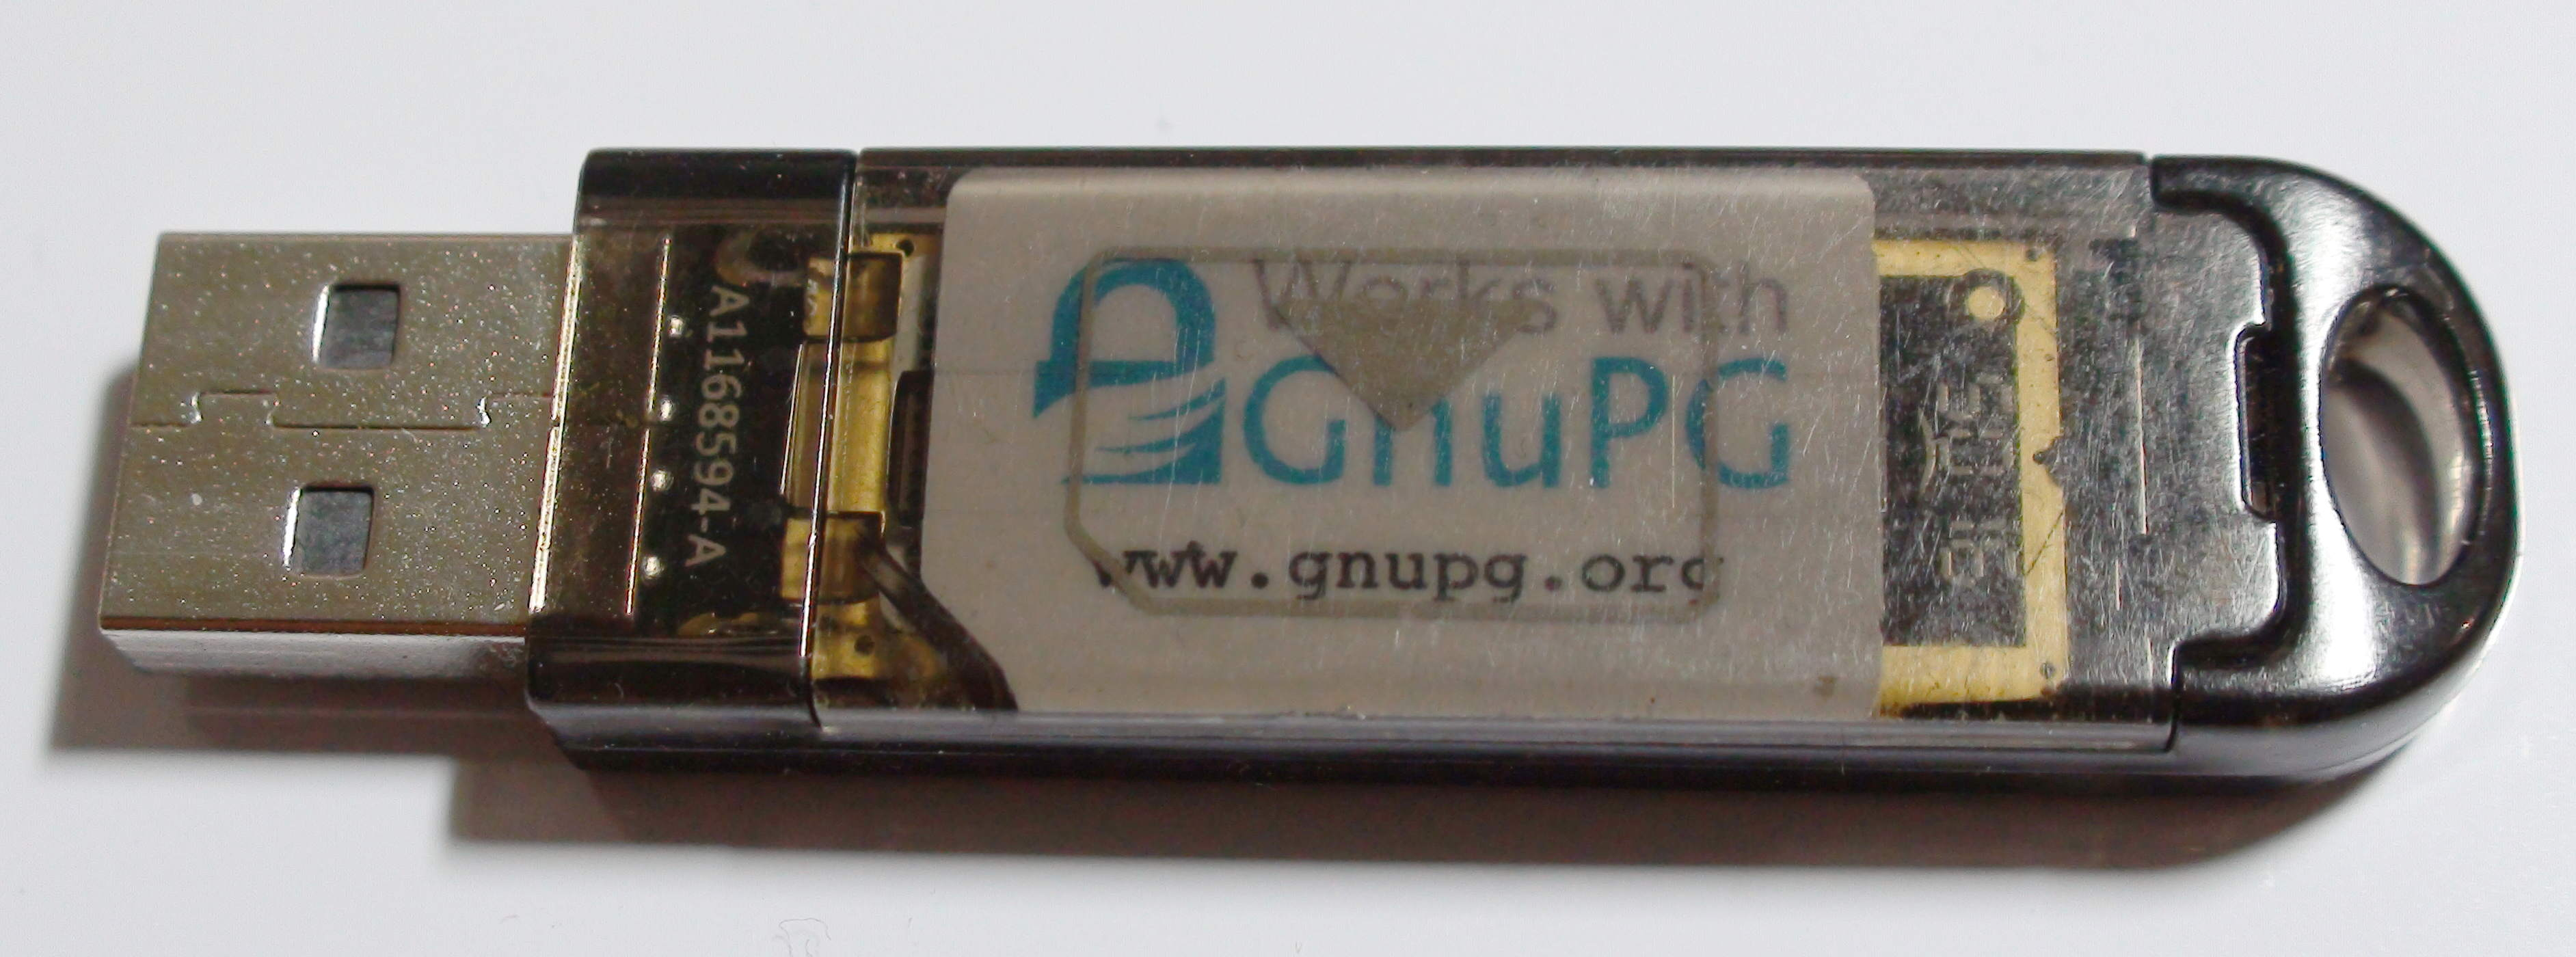 File:Gemalto usb shell token with a punched OpenPGP card inside jpg